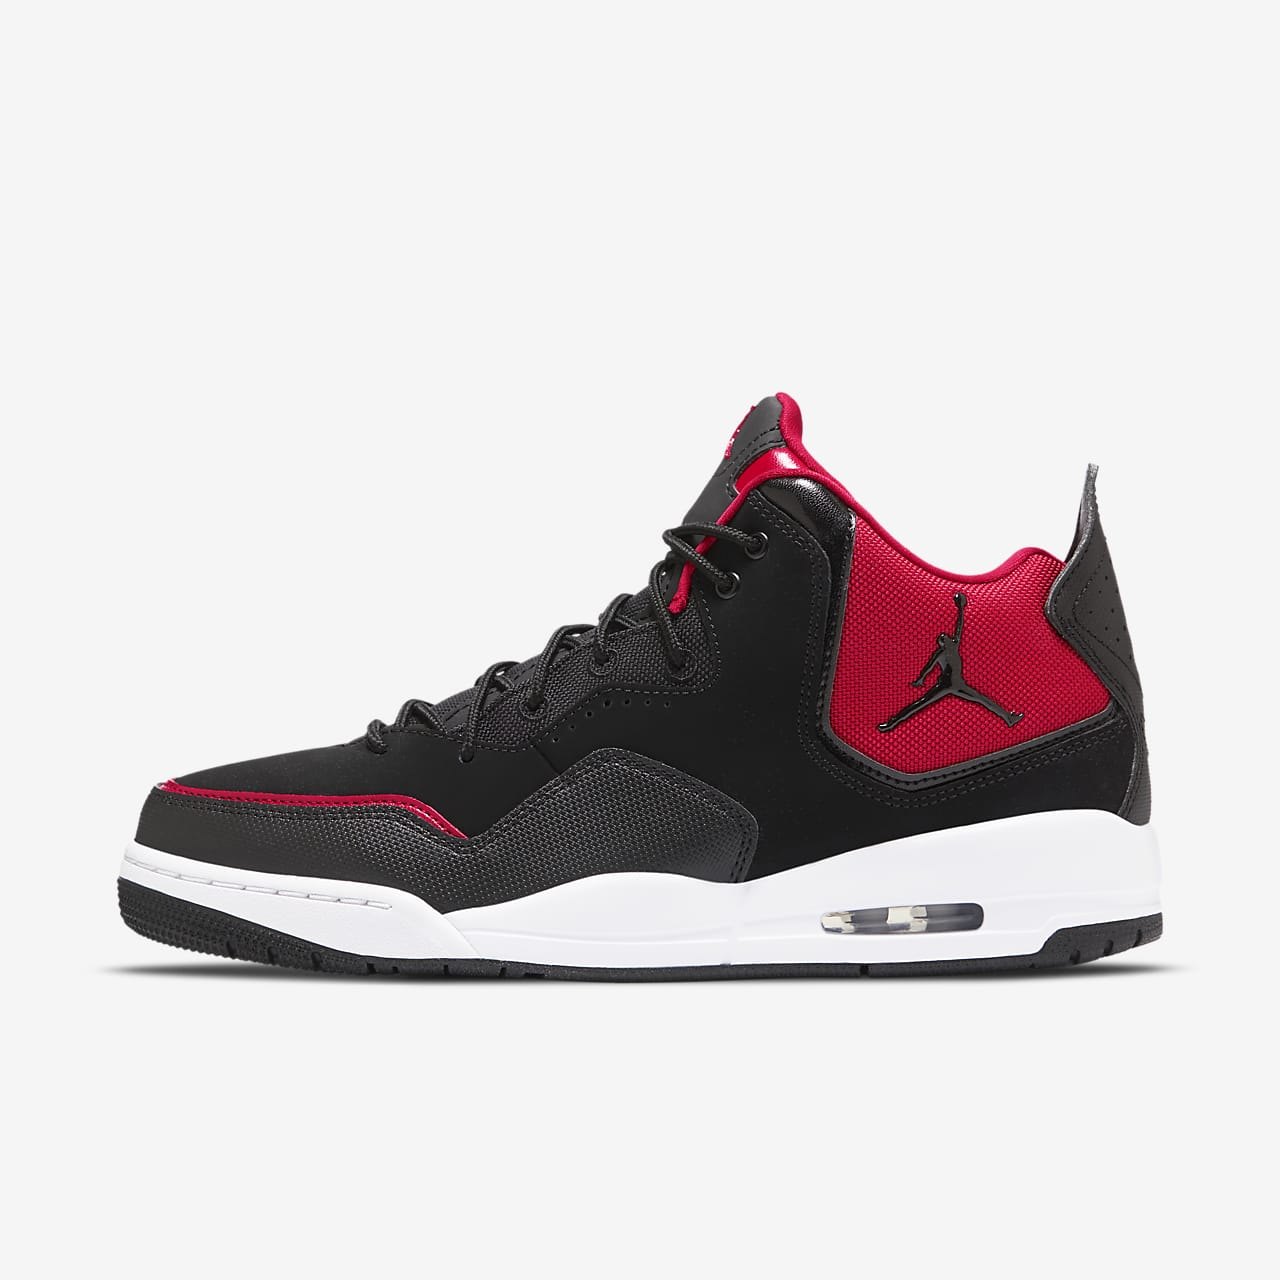 7f95a0c2616 Jordan Courtside 23 Men s Shoe. Nike.com AE